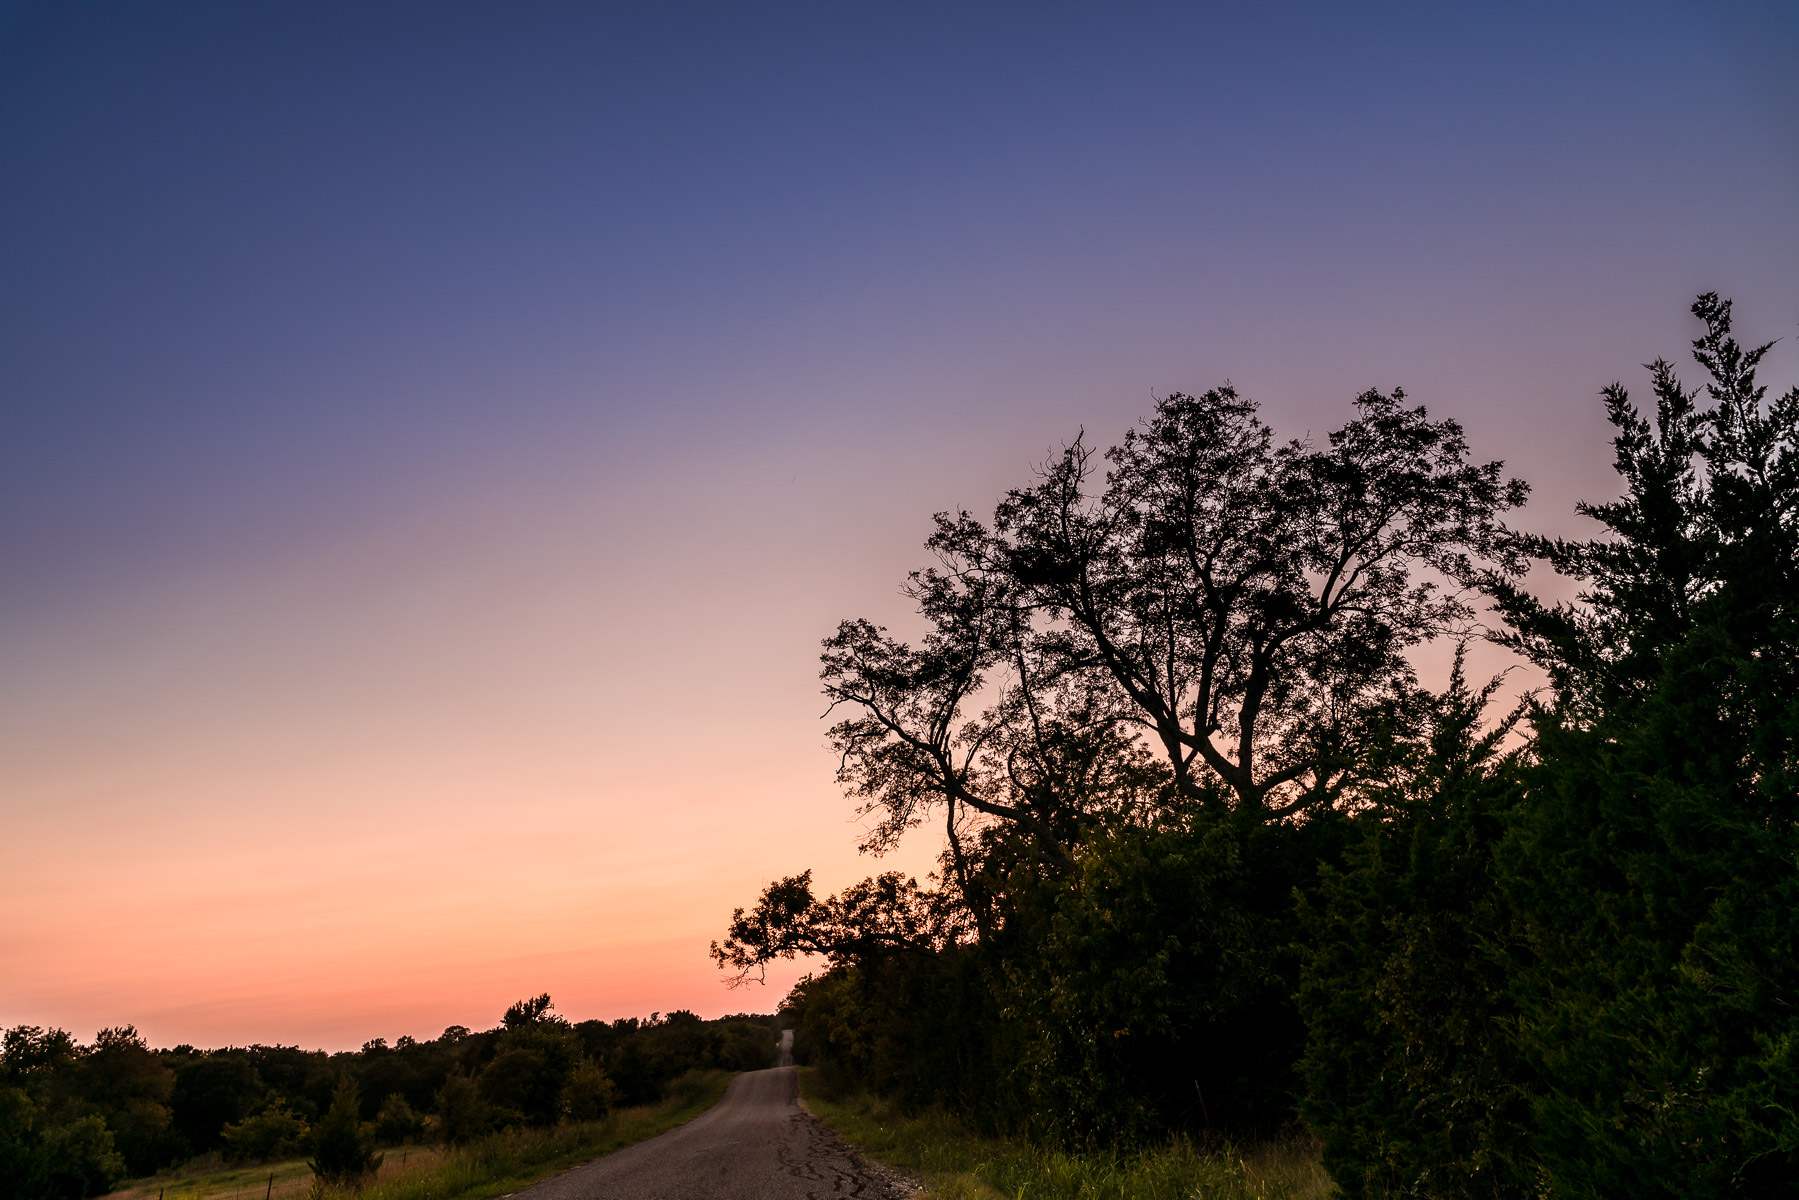 The sun sets on a backcountry road near Anna, Texas.